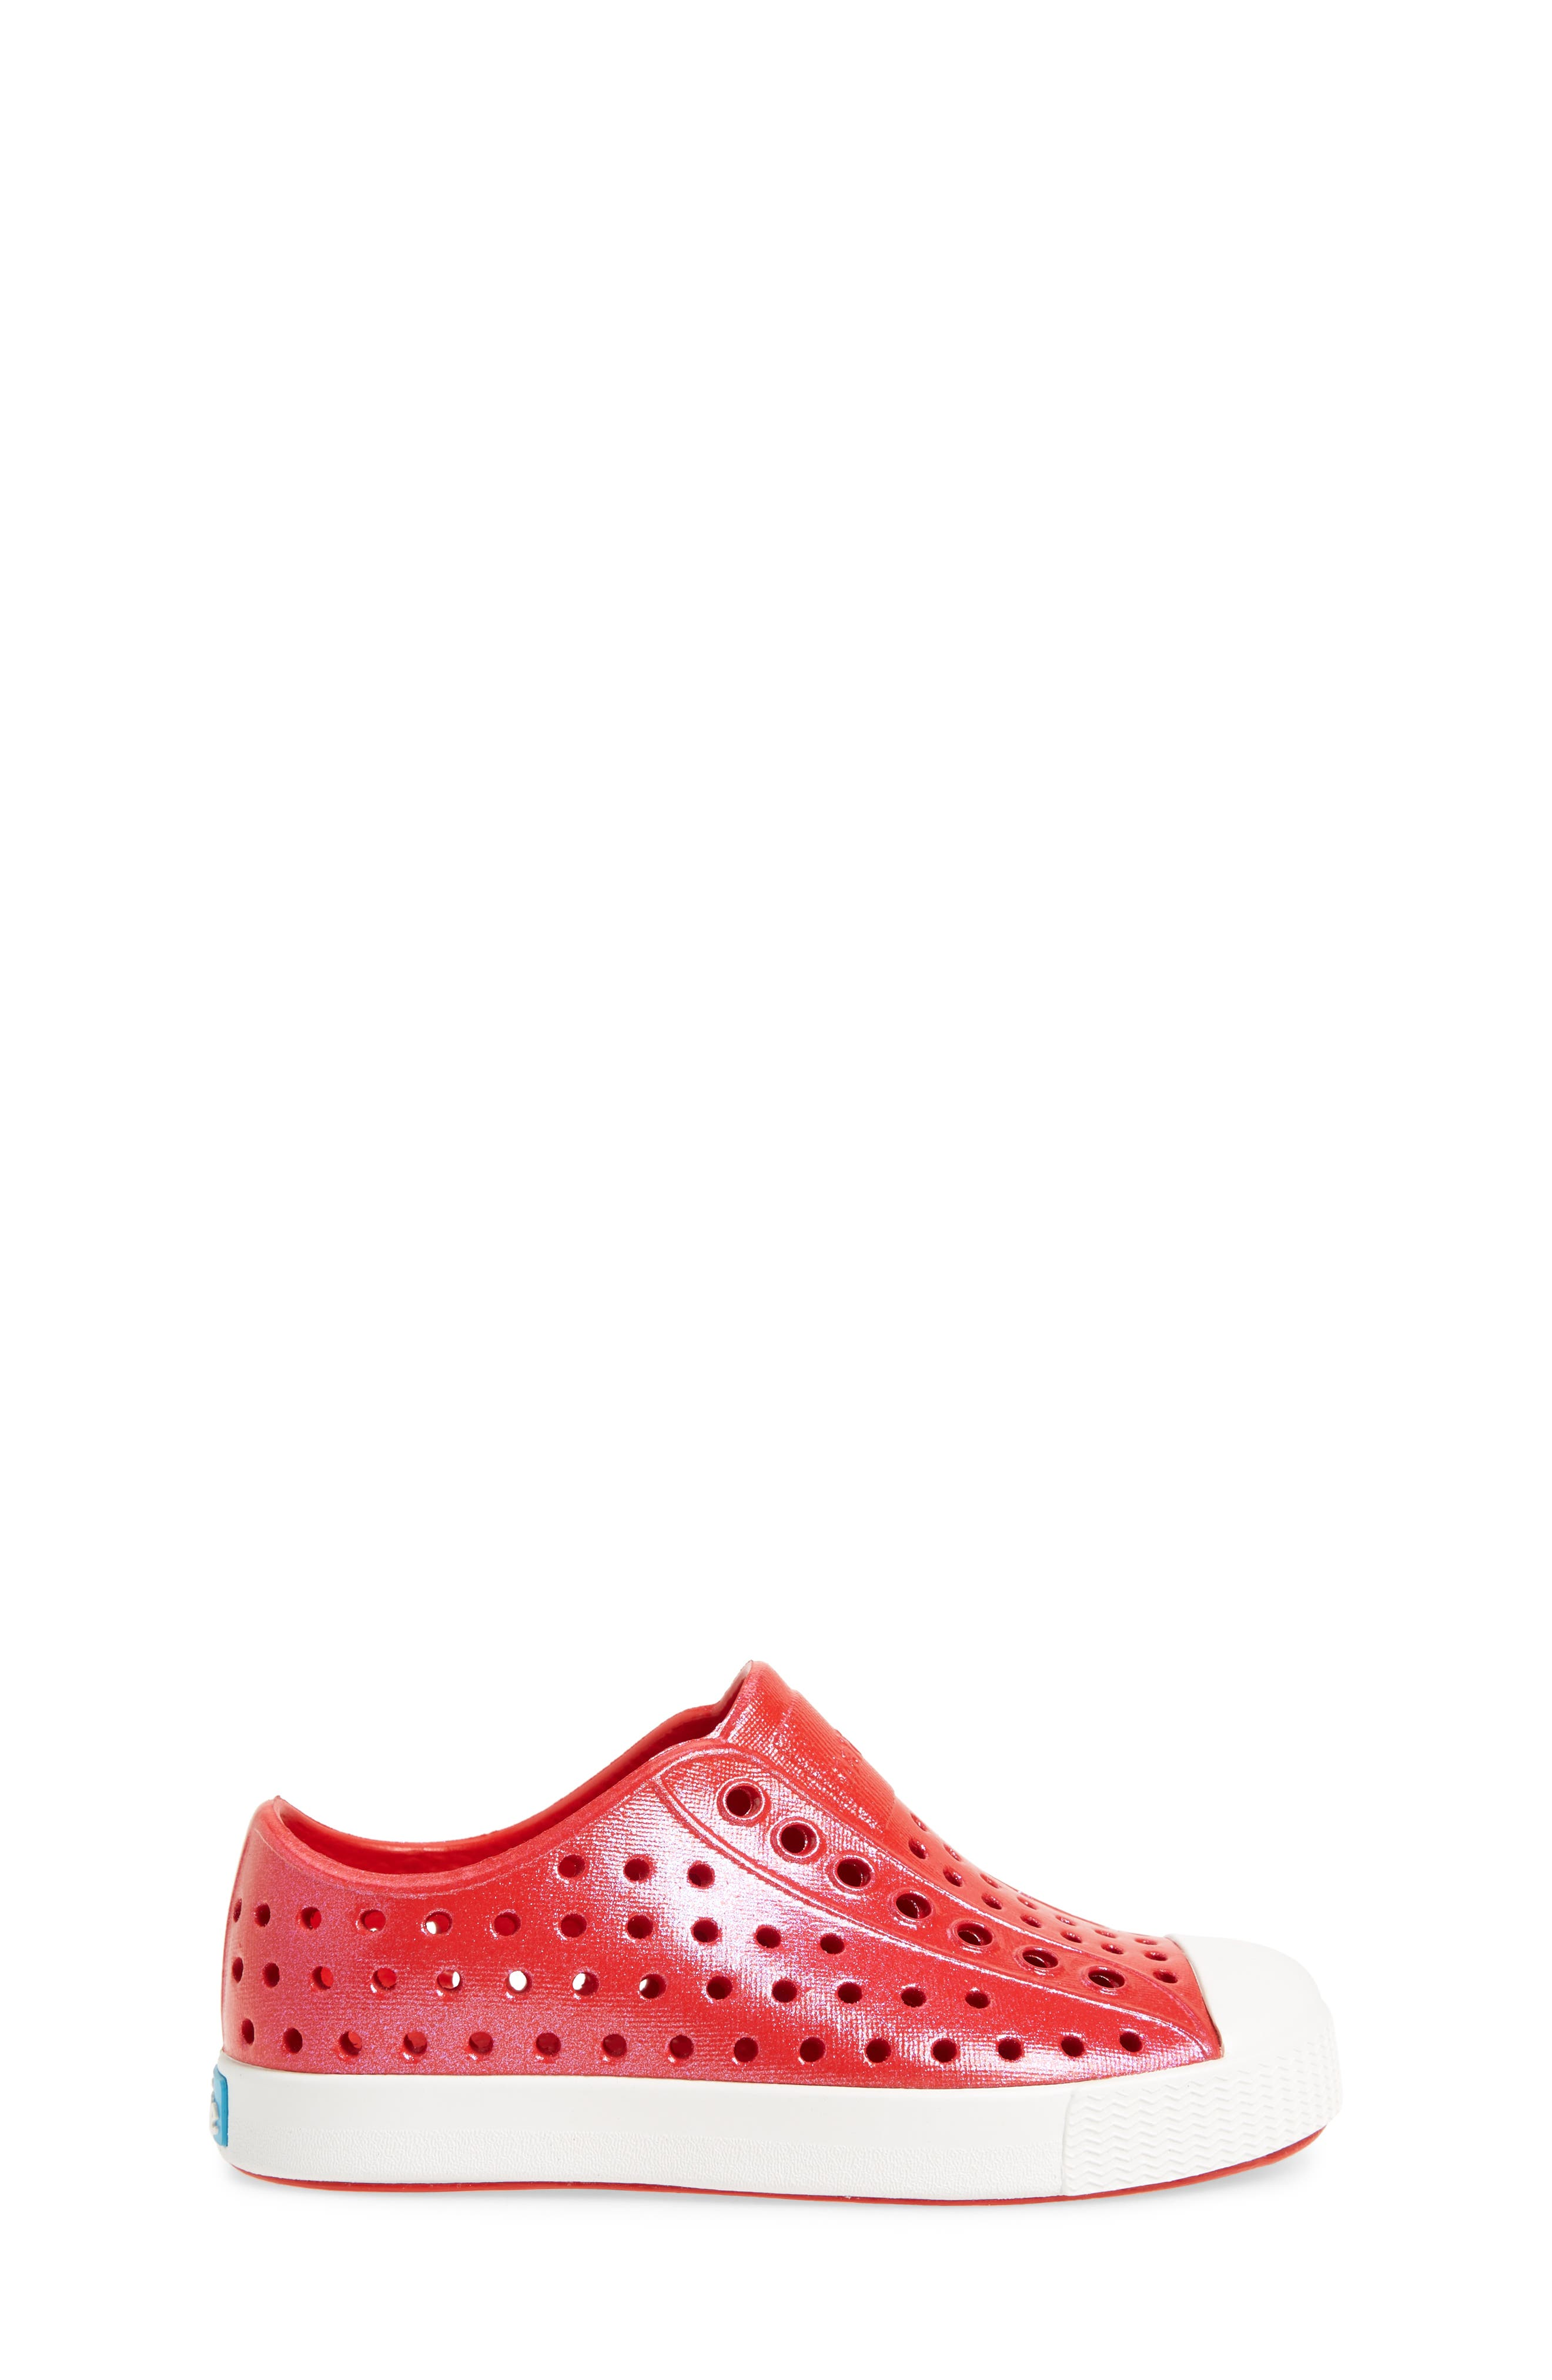 'Jefferson' Iridescent Slip-On Sneaker,                             Alternate thumbnail 3, color,                             Torch Red/ Shell White/ Galaxy